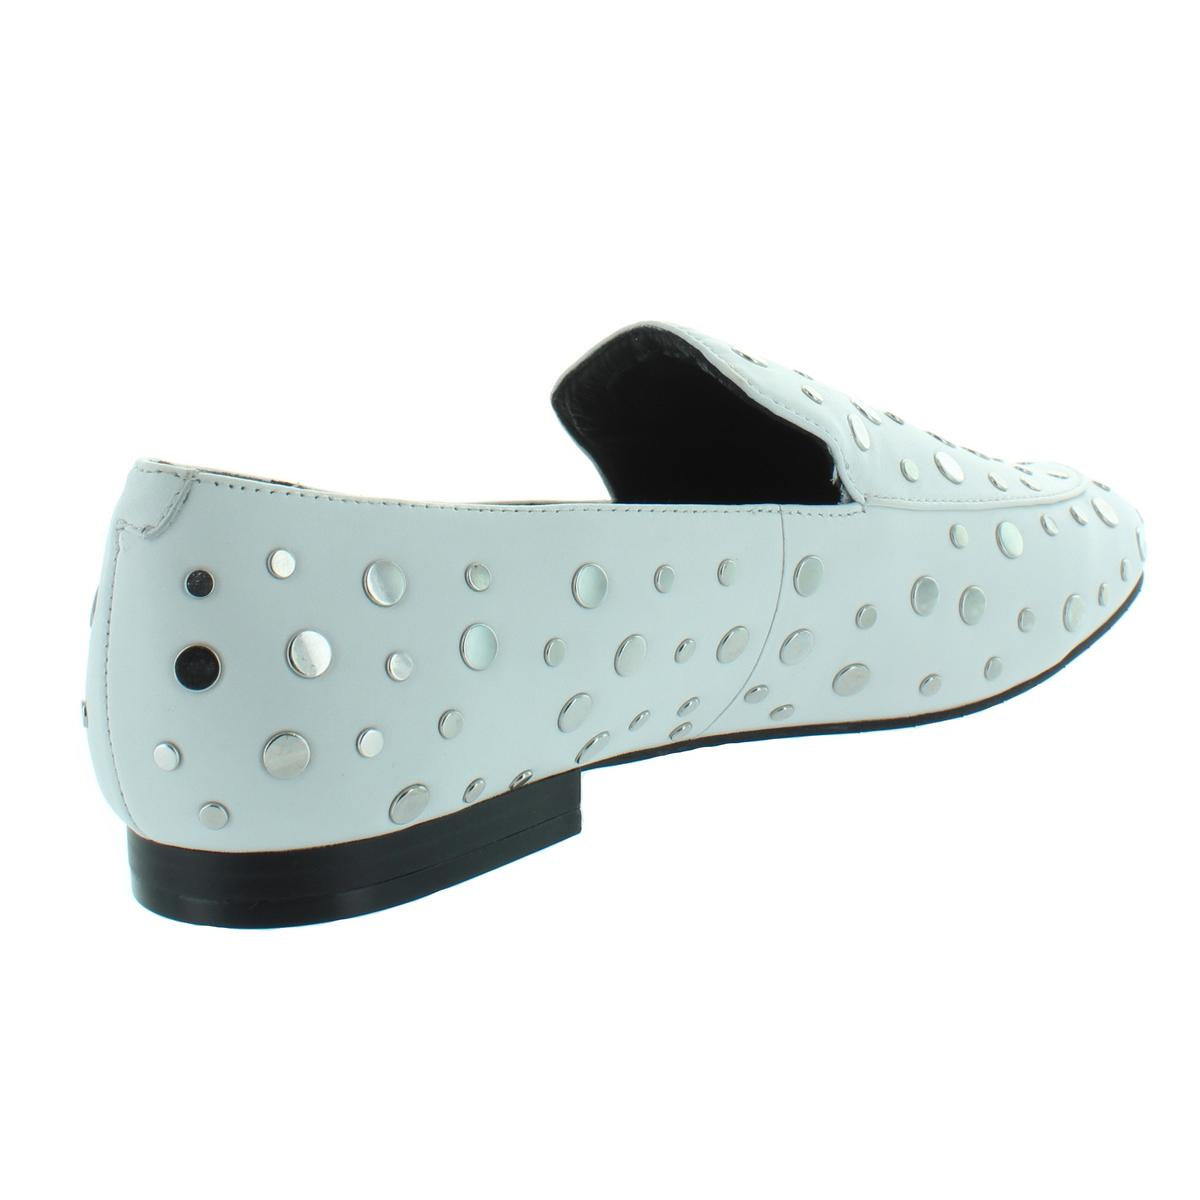 Kenneth New Cole New Kenneth York Damenschuhe Westley 2 Studded Leder Loafers Schuhes BHFO 0897 f4726c